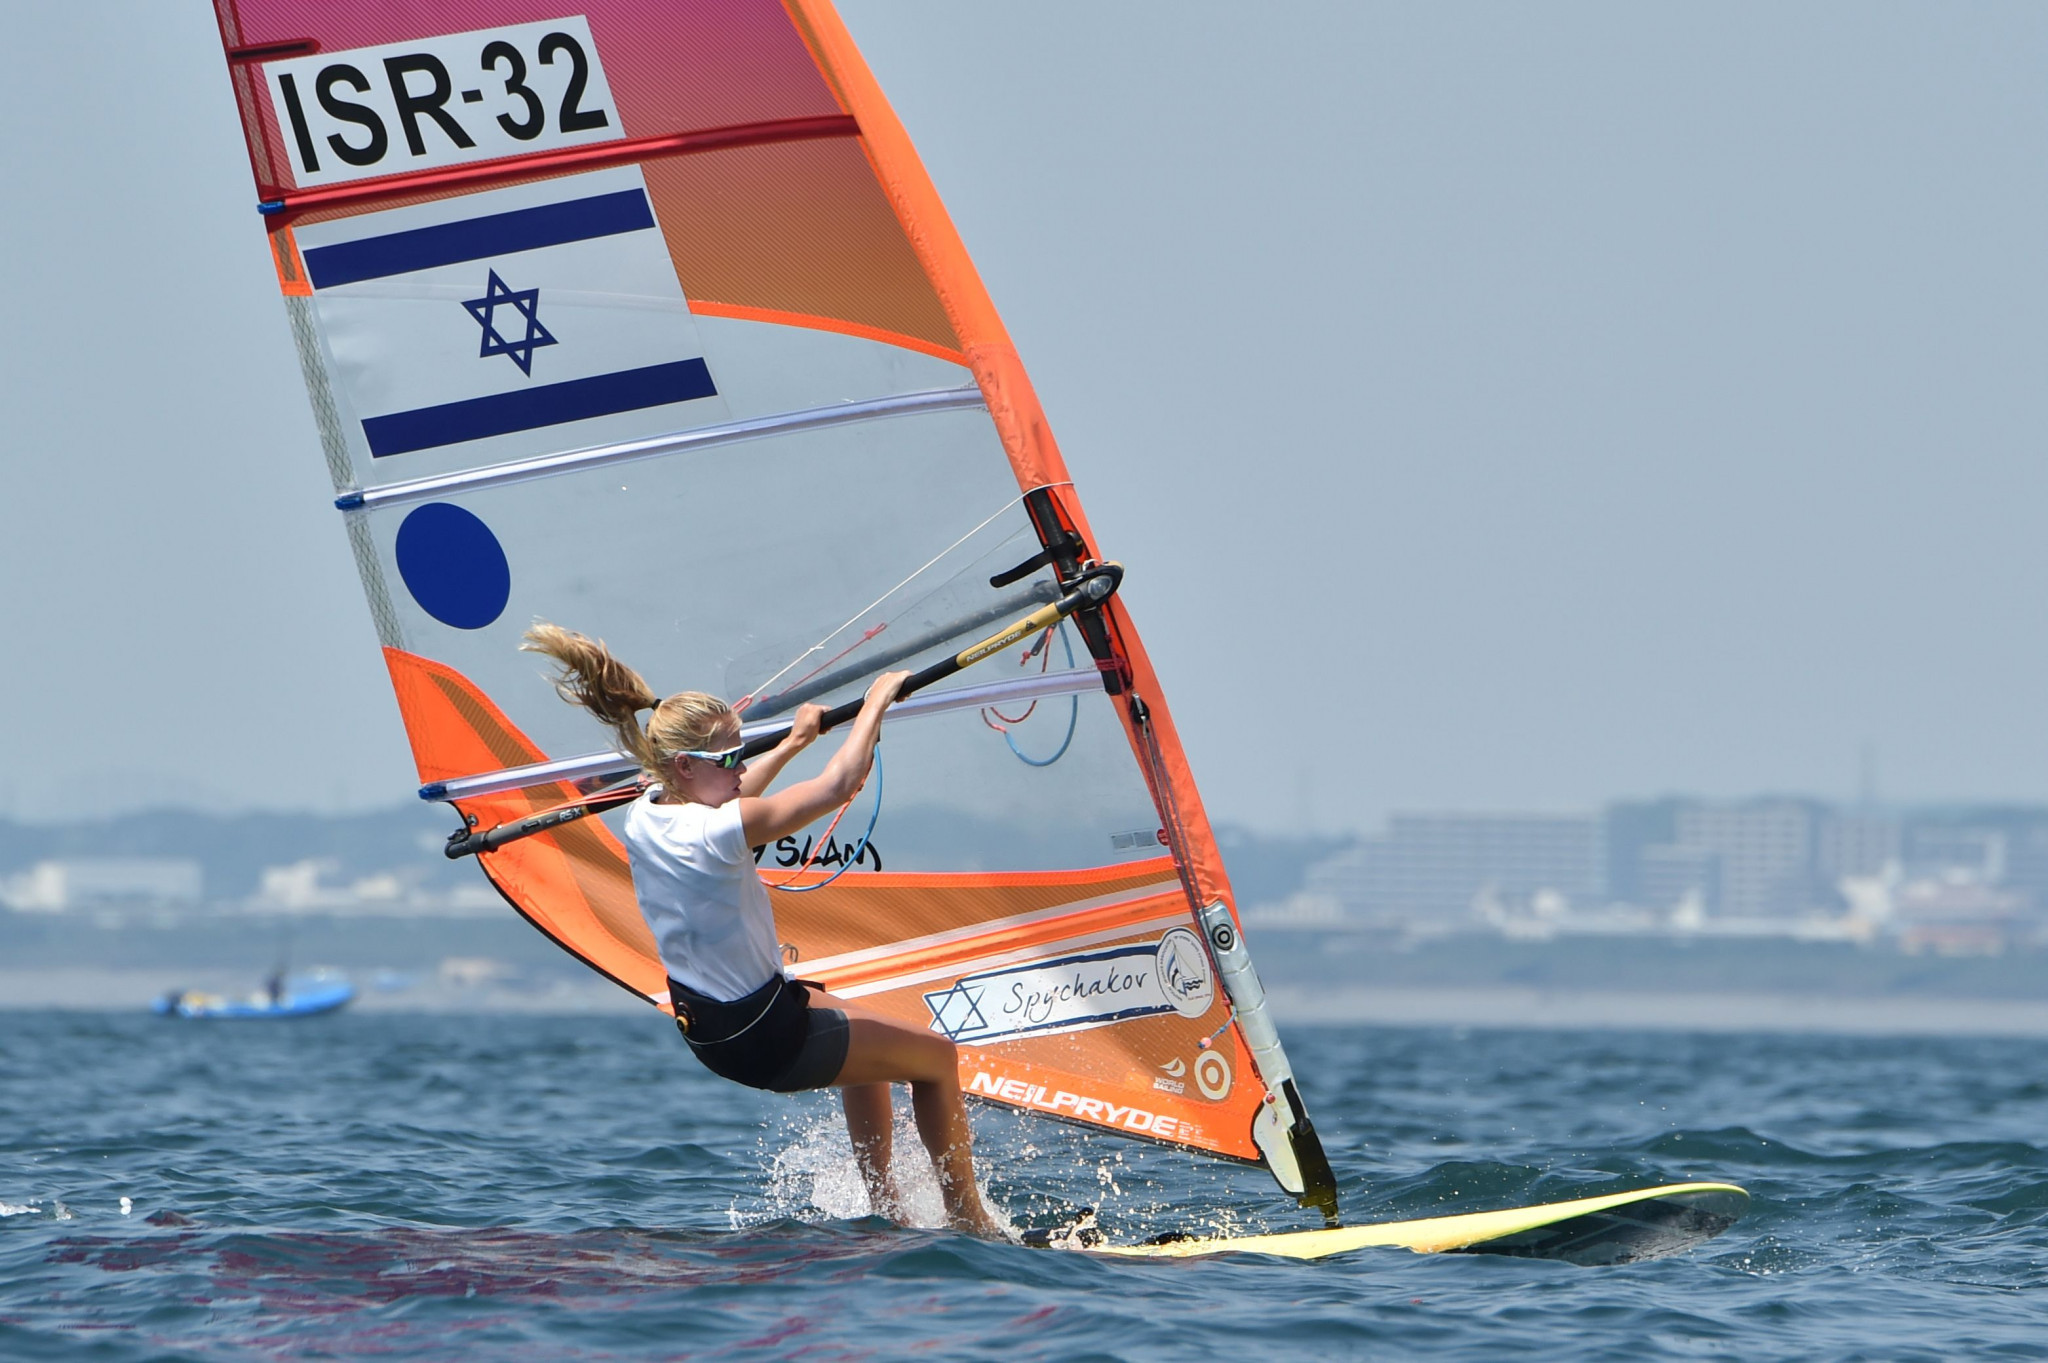 Katy Spychakov is considered to be among Israel's best hopes for an Olympic medal at Tokyo 2020